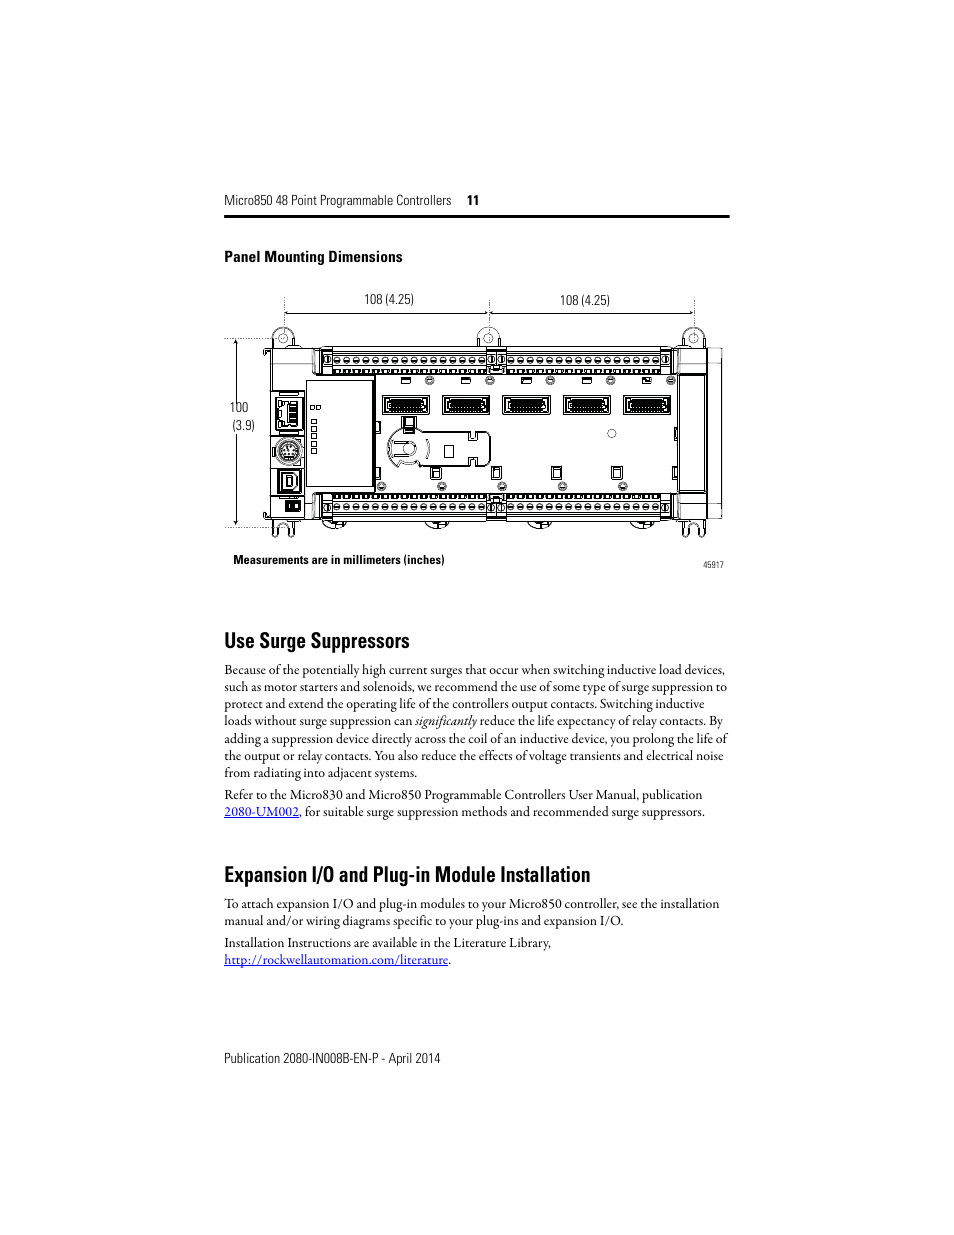 rockwell automation 2080 lc50 48awb_48qbb_48qvb_48qwb micro850 48 point programmable controllers installation instructions page11 use surge suppressors, expansion i o and plug in module micro 850 wiring diagram at webbmarketing.co